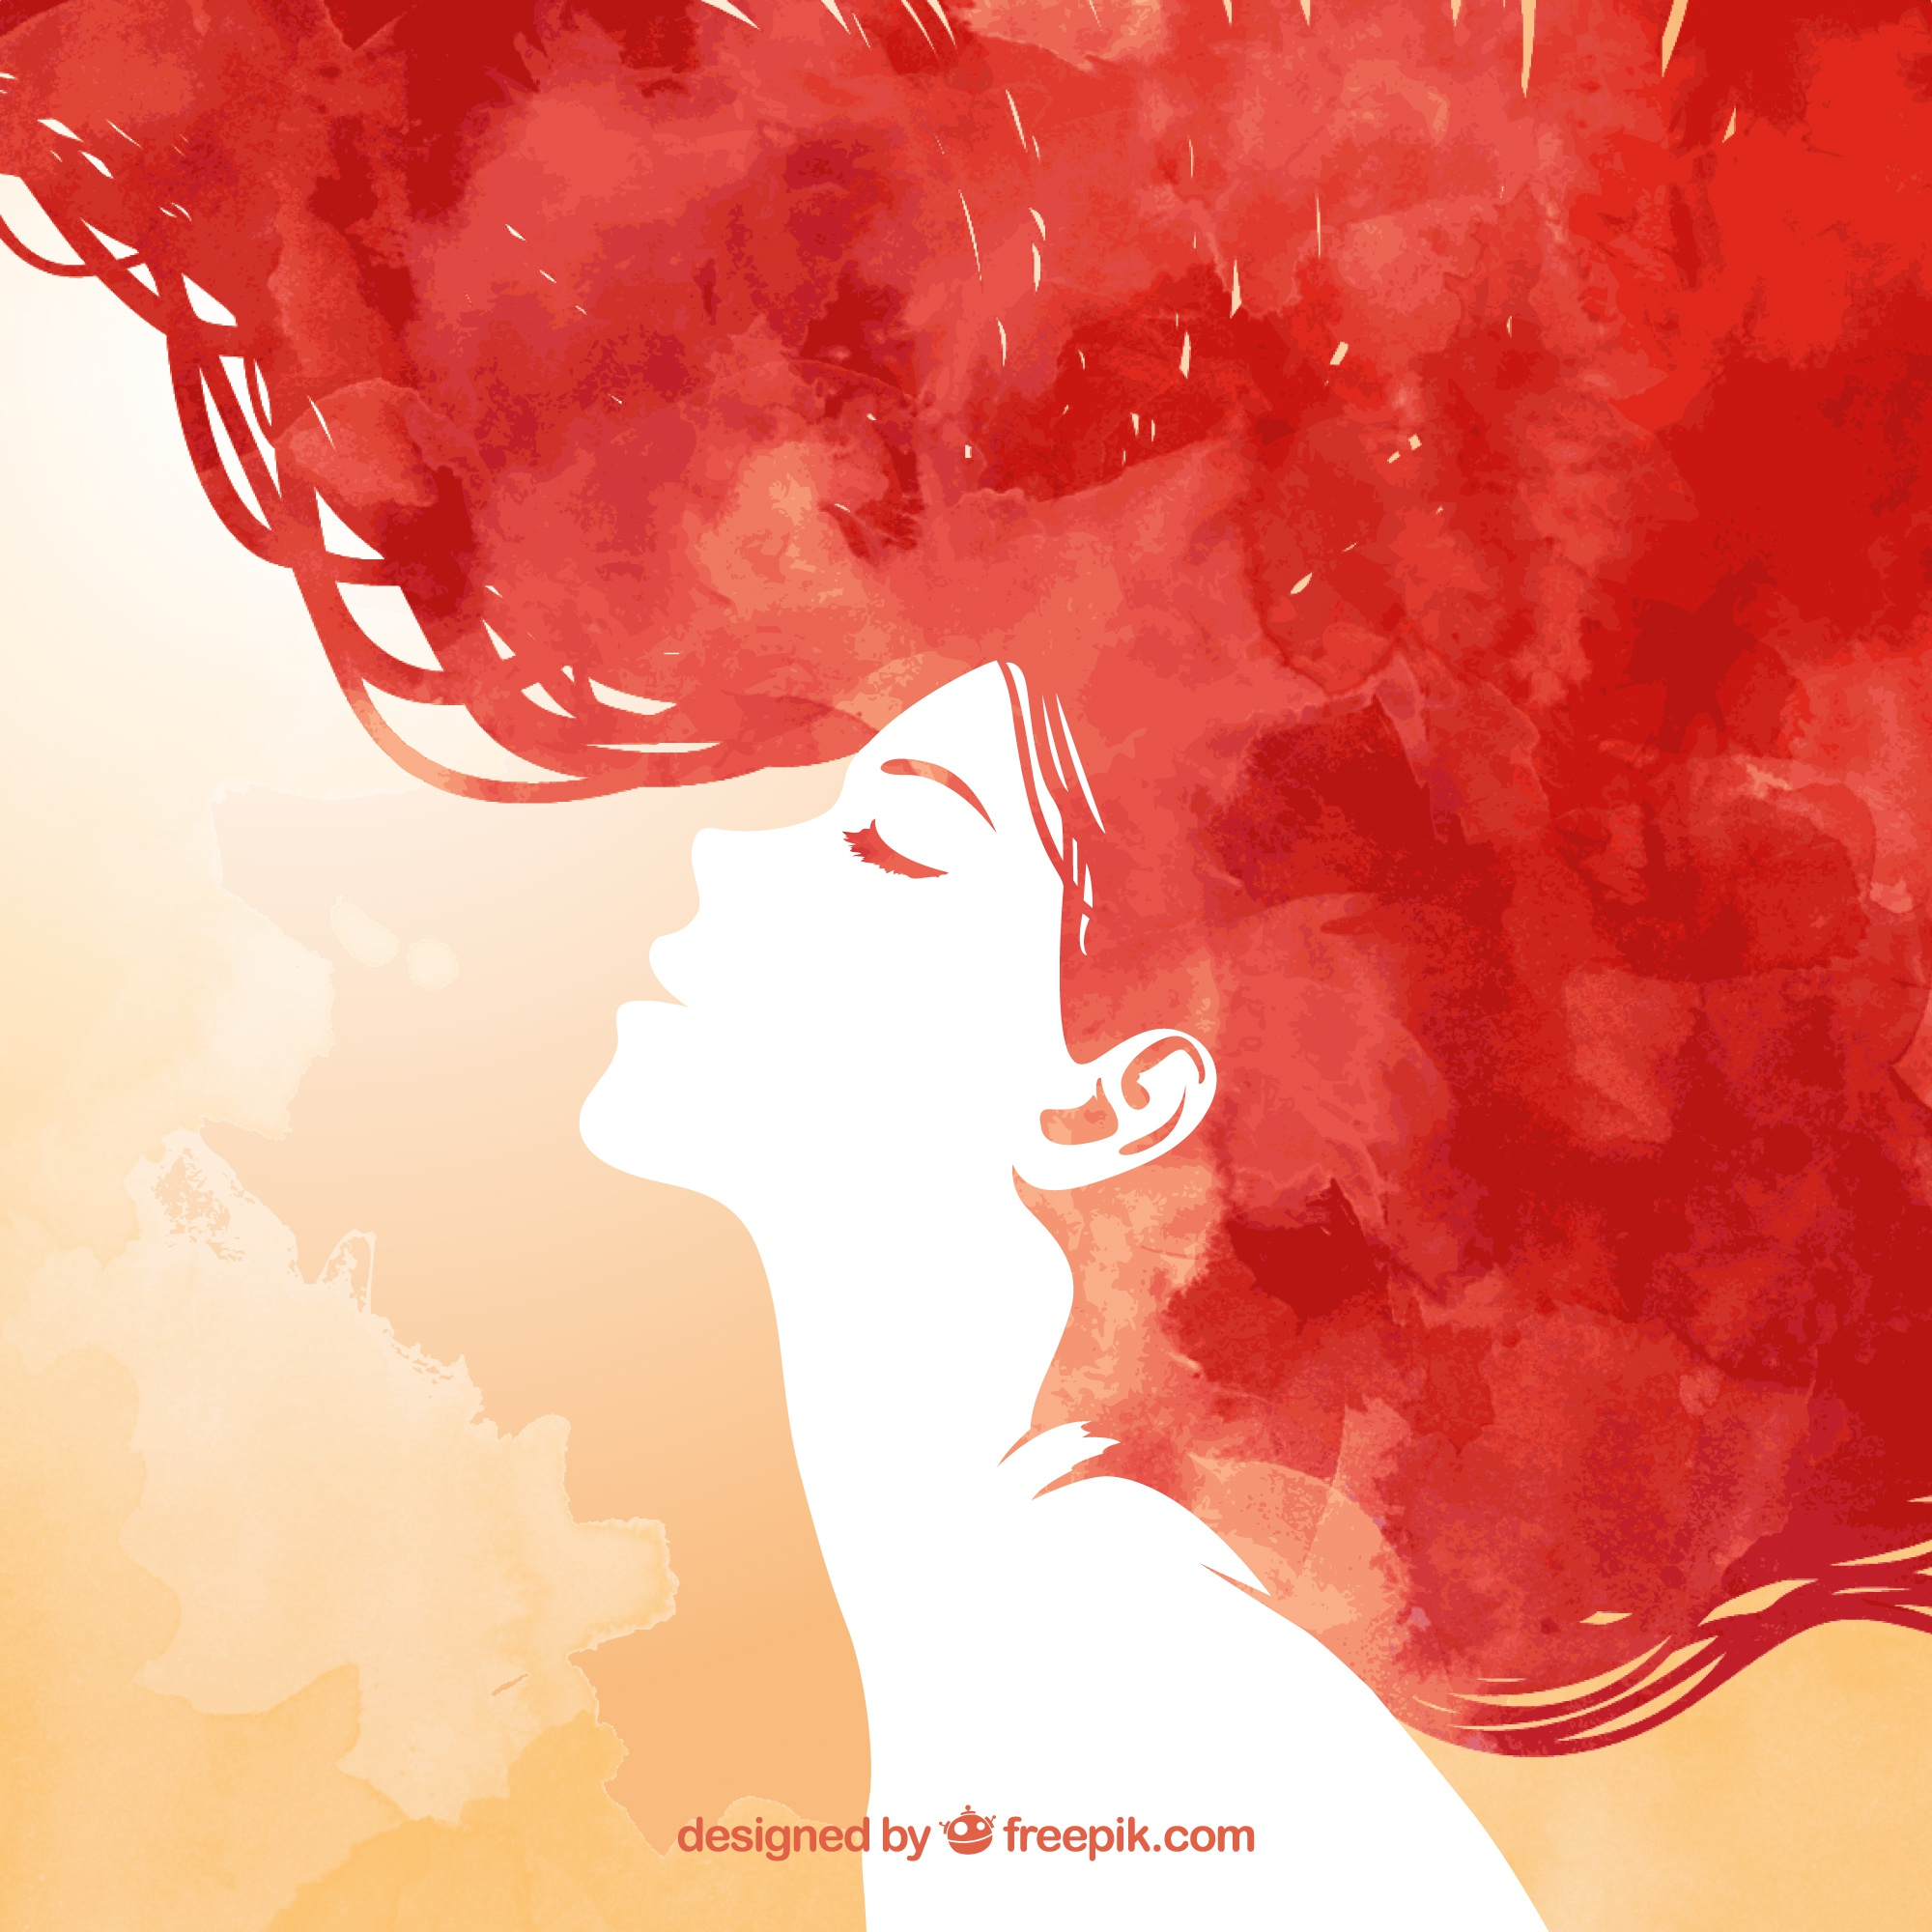 Hand painted redhead woman